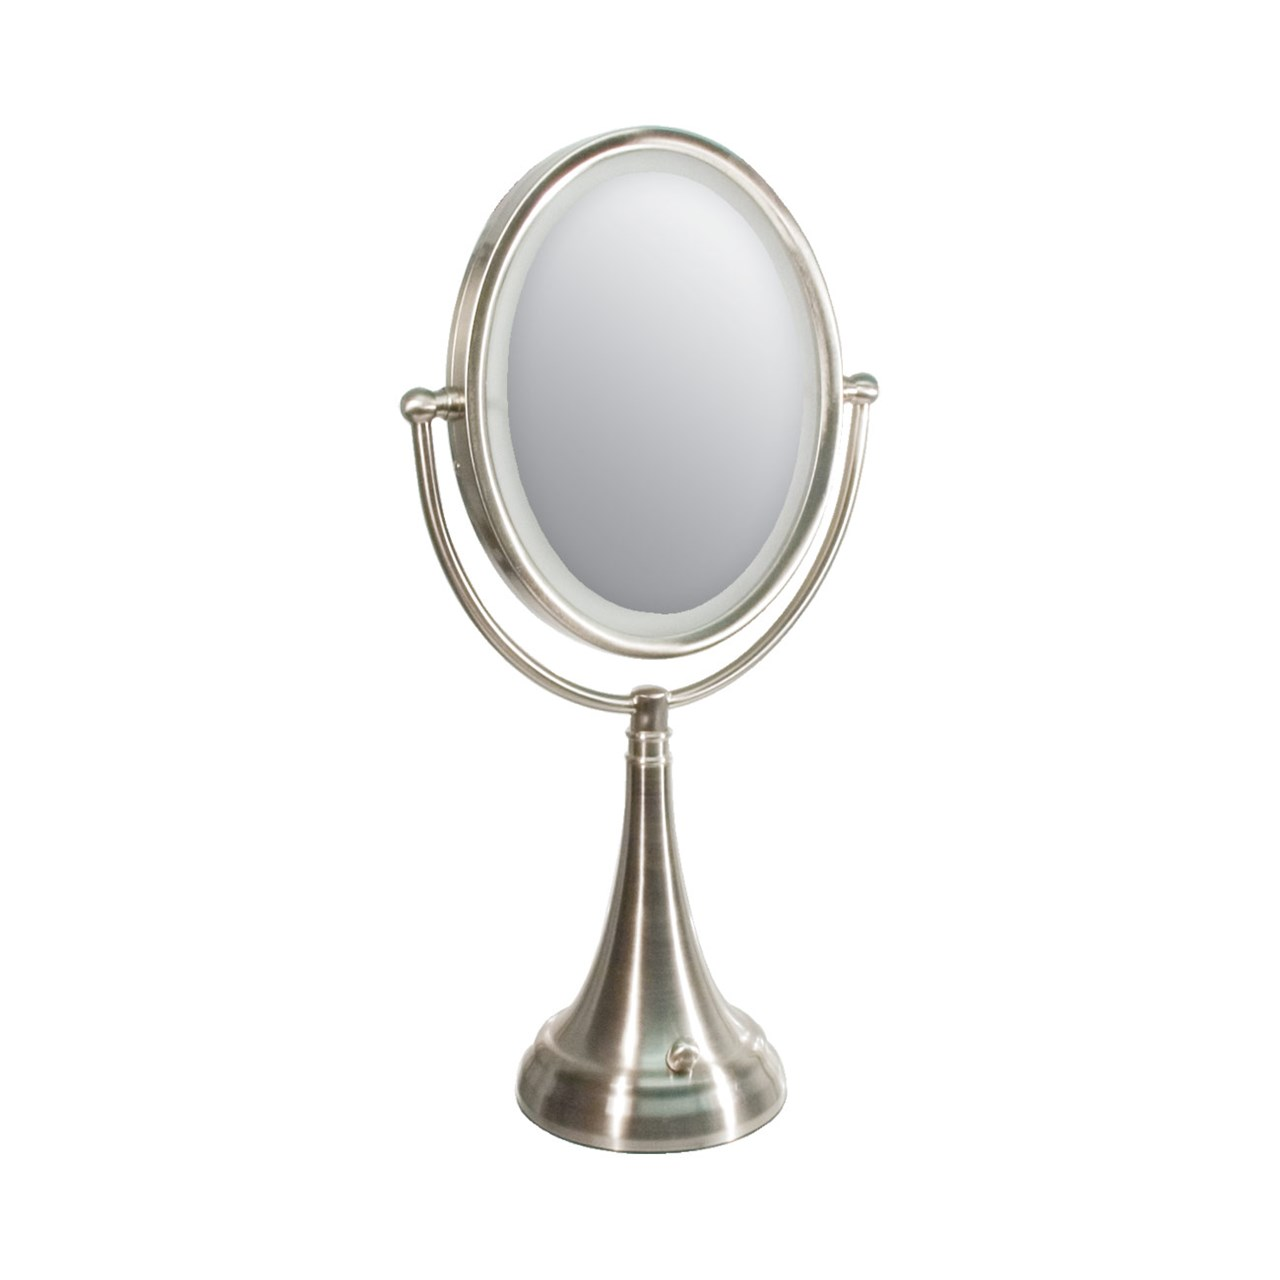 Conair Lighted Makeup Mirror | Conair Two-sided Makeup Mirror with 4 Light Settings | Conair Make Up Mirror